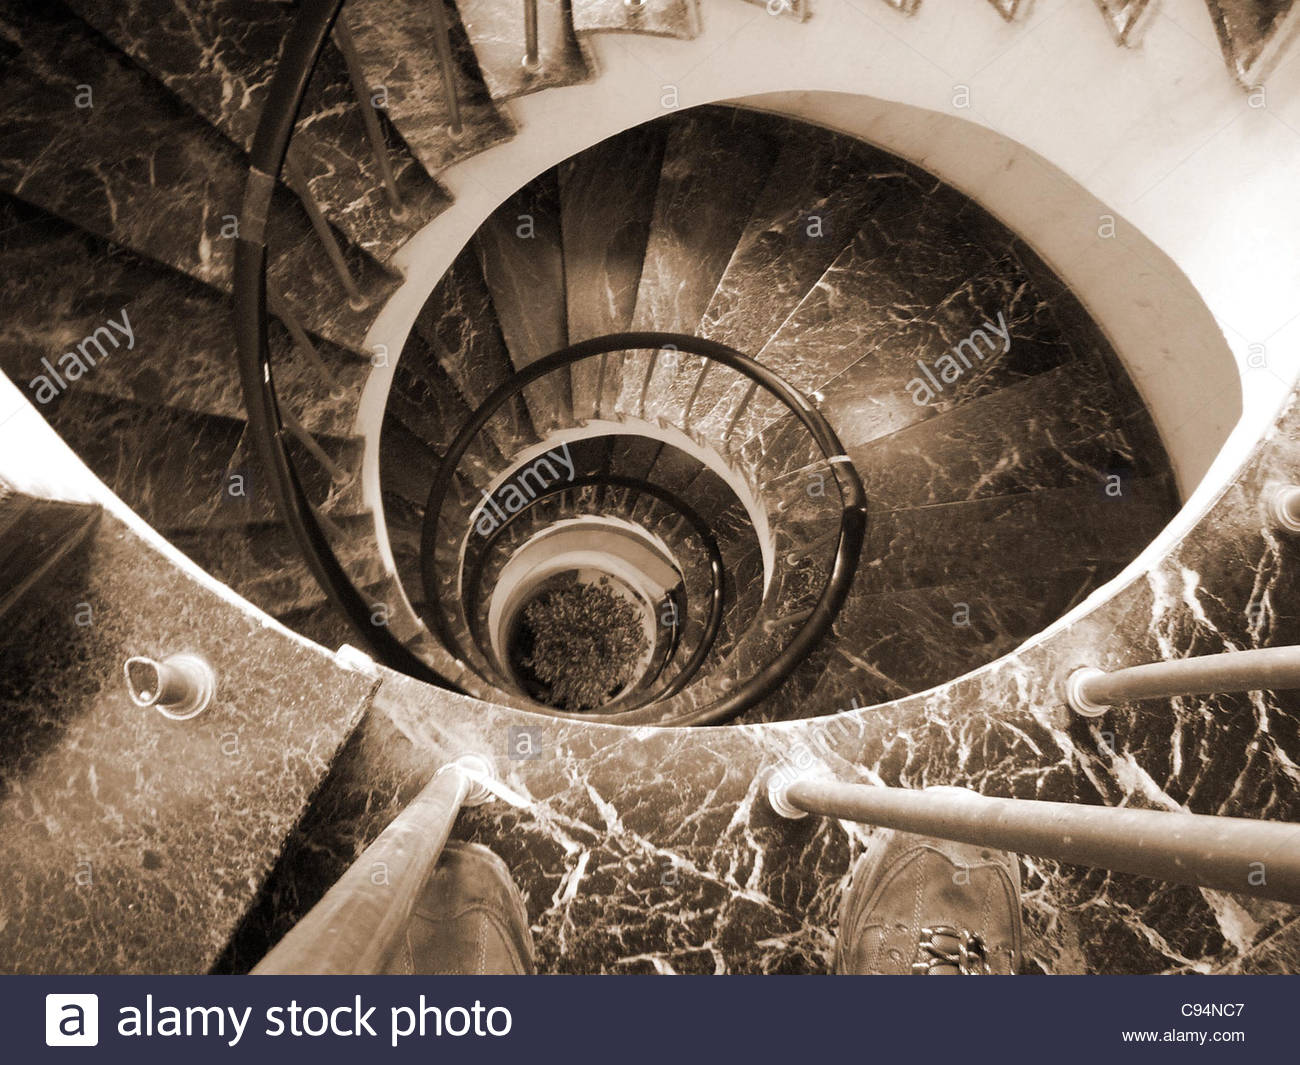 Sepia black and white monochrome Spiral staircase aerial stairs descending down steps - Stock Image